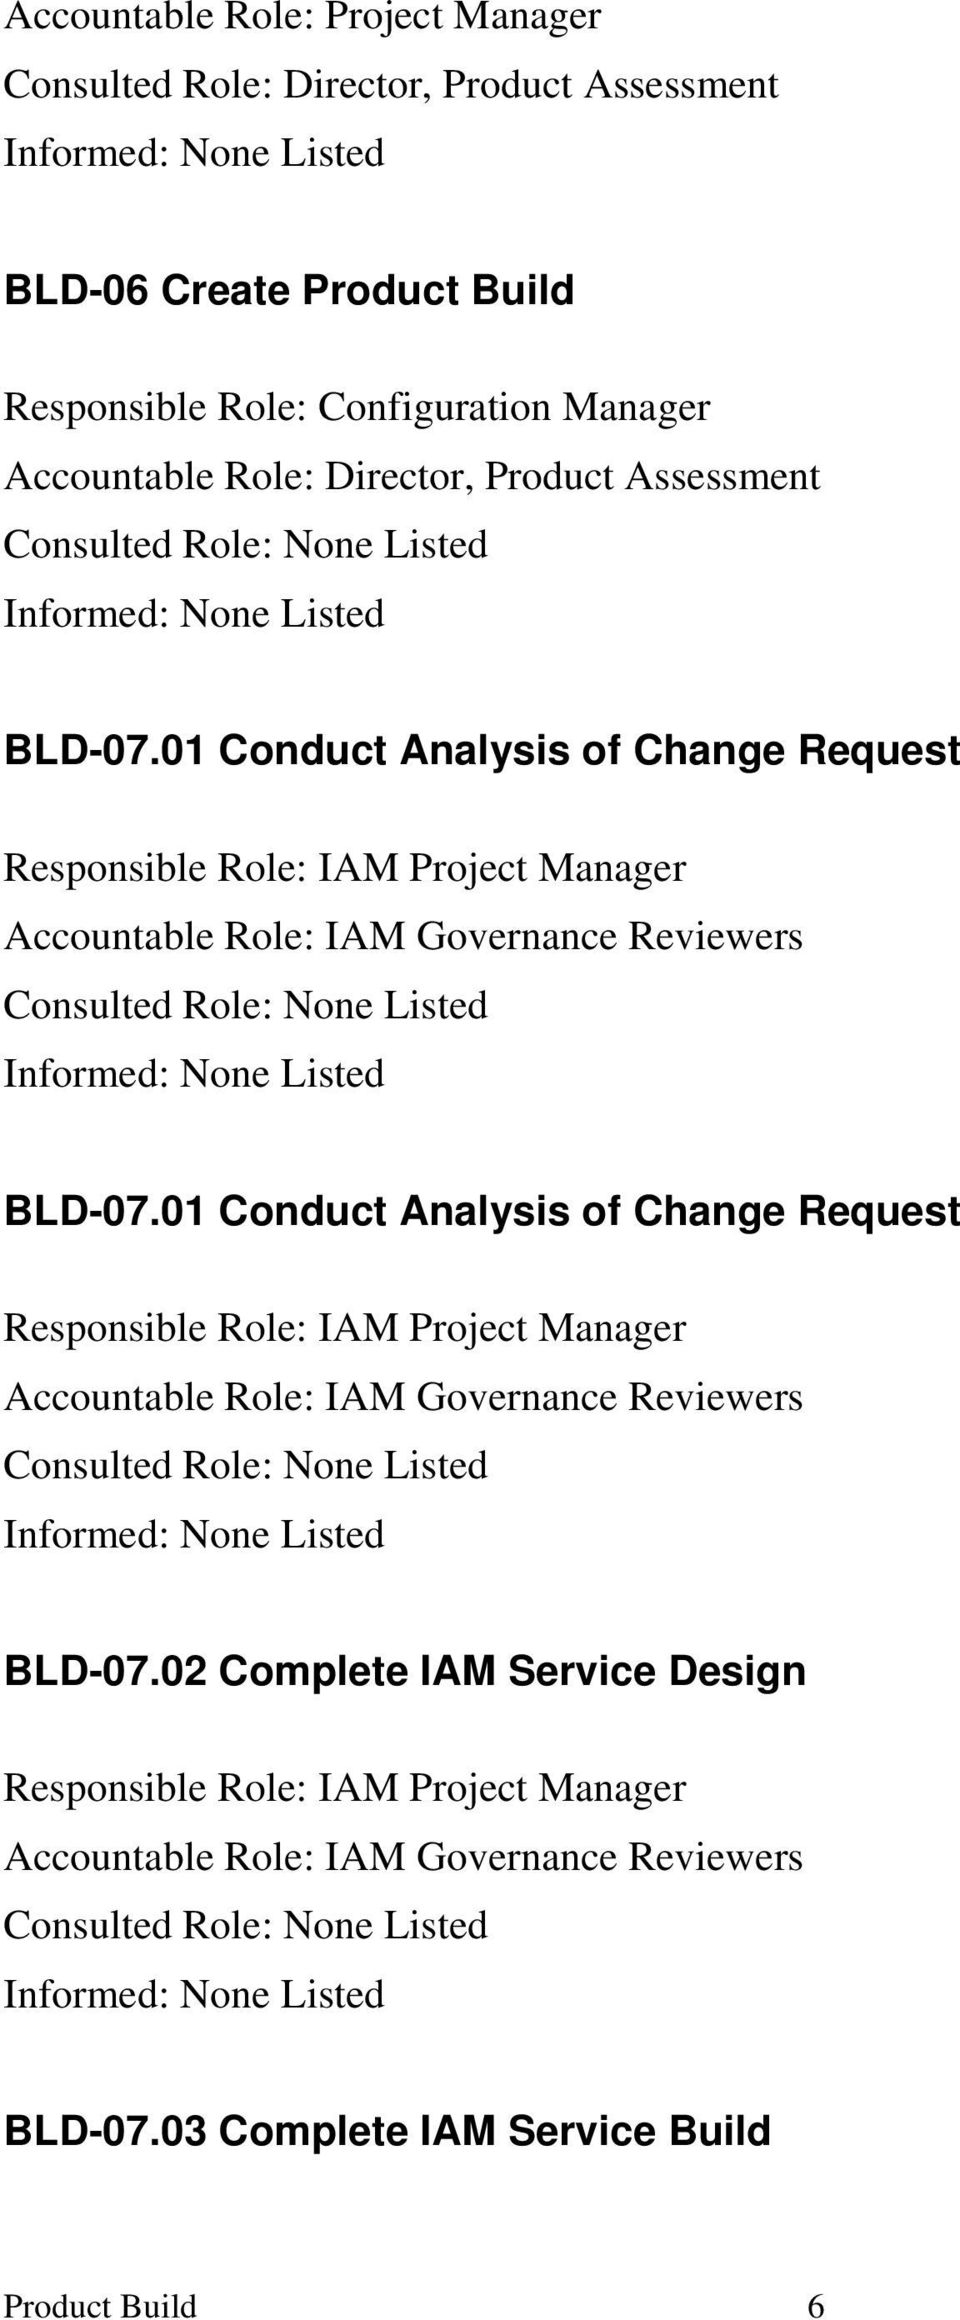 01 Conduct Analysis of Change Request Responsible Role: IAM Project Manager Accountable Role: IAM Governance Reviewers Consulted Role: Informed: BLD-07.